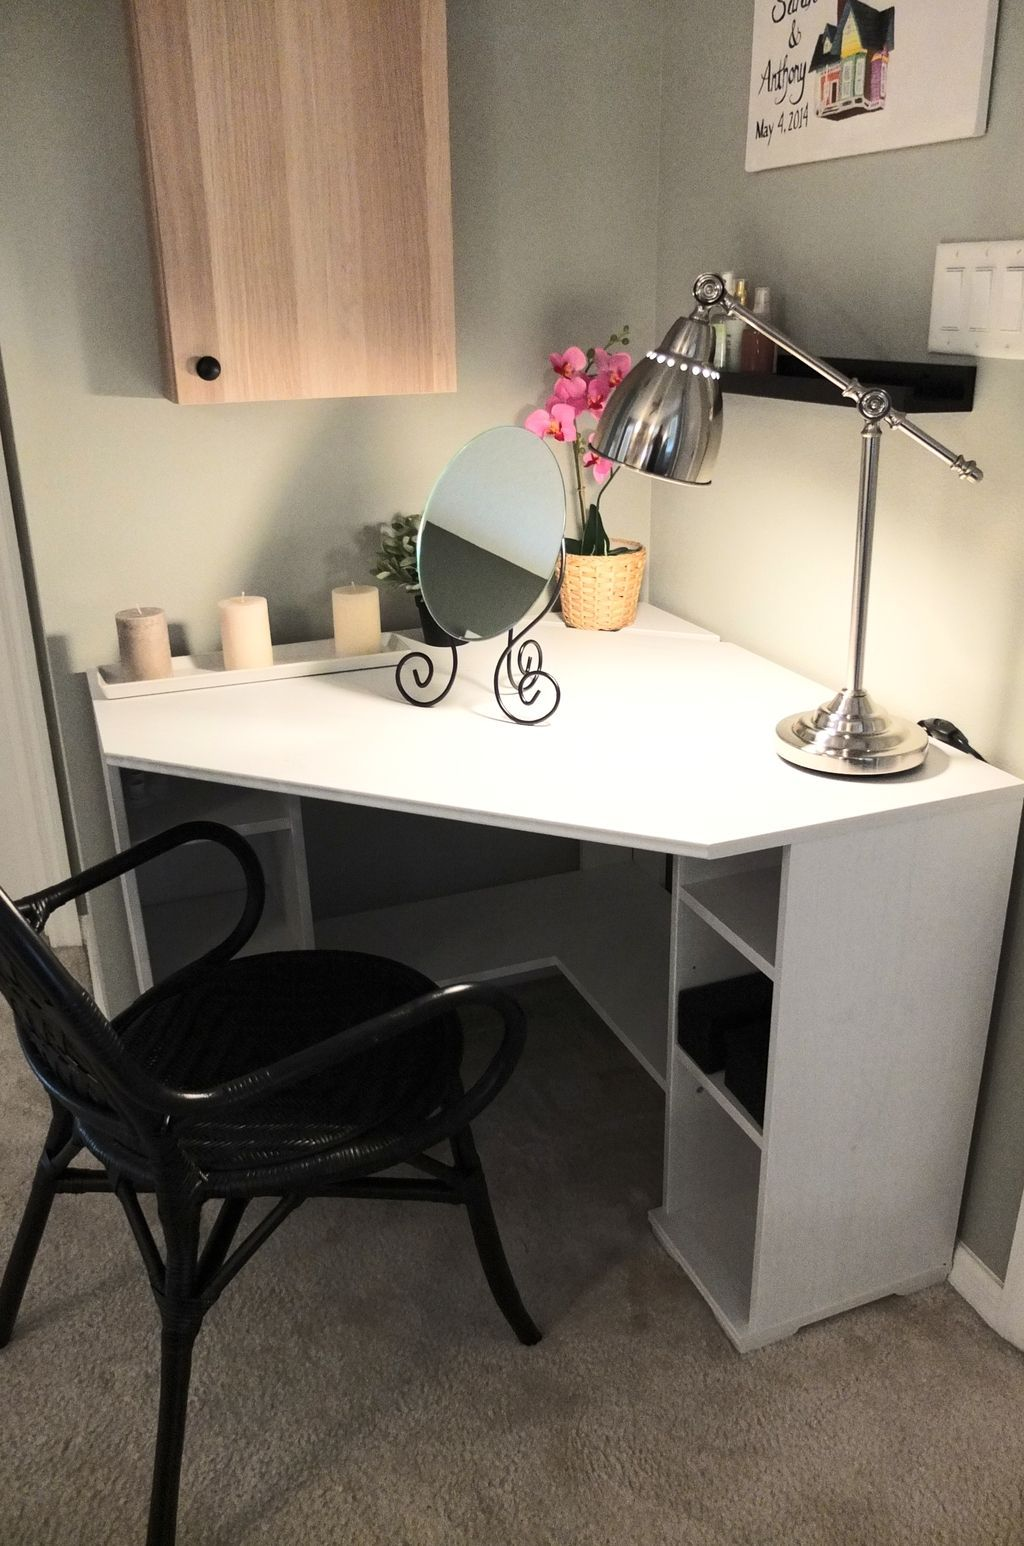 15 Stunning Diy Corner Desk Designs To Inspire You Diy Corner